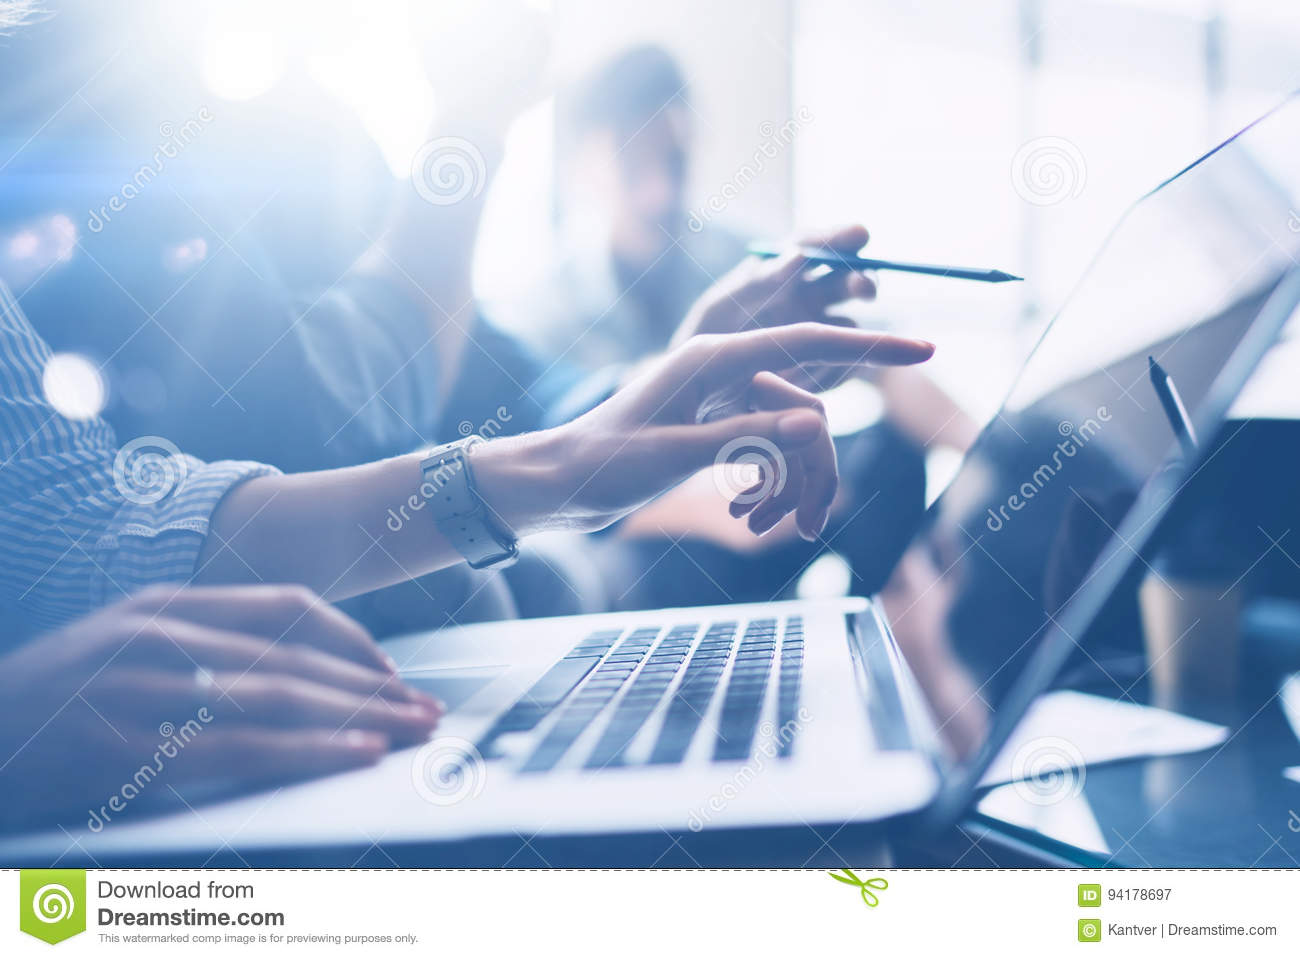 Business meeting concept.Closeup view of coworkers team working with mobile computer at modern office.Analyze business